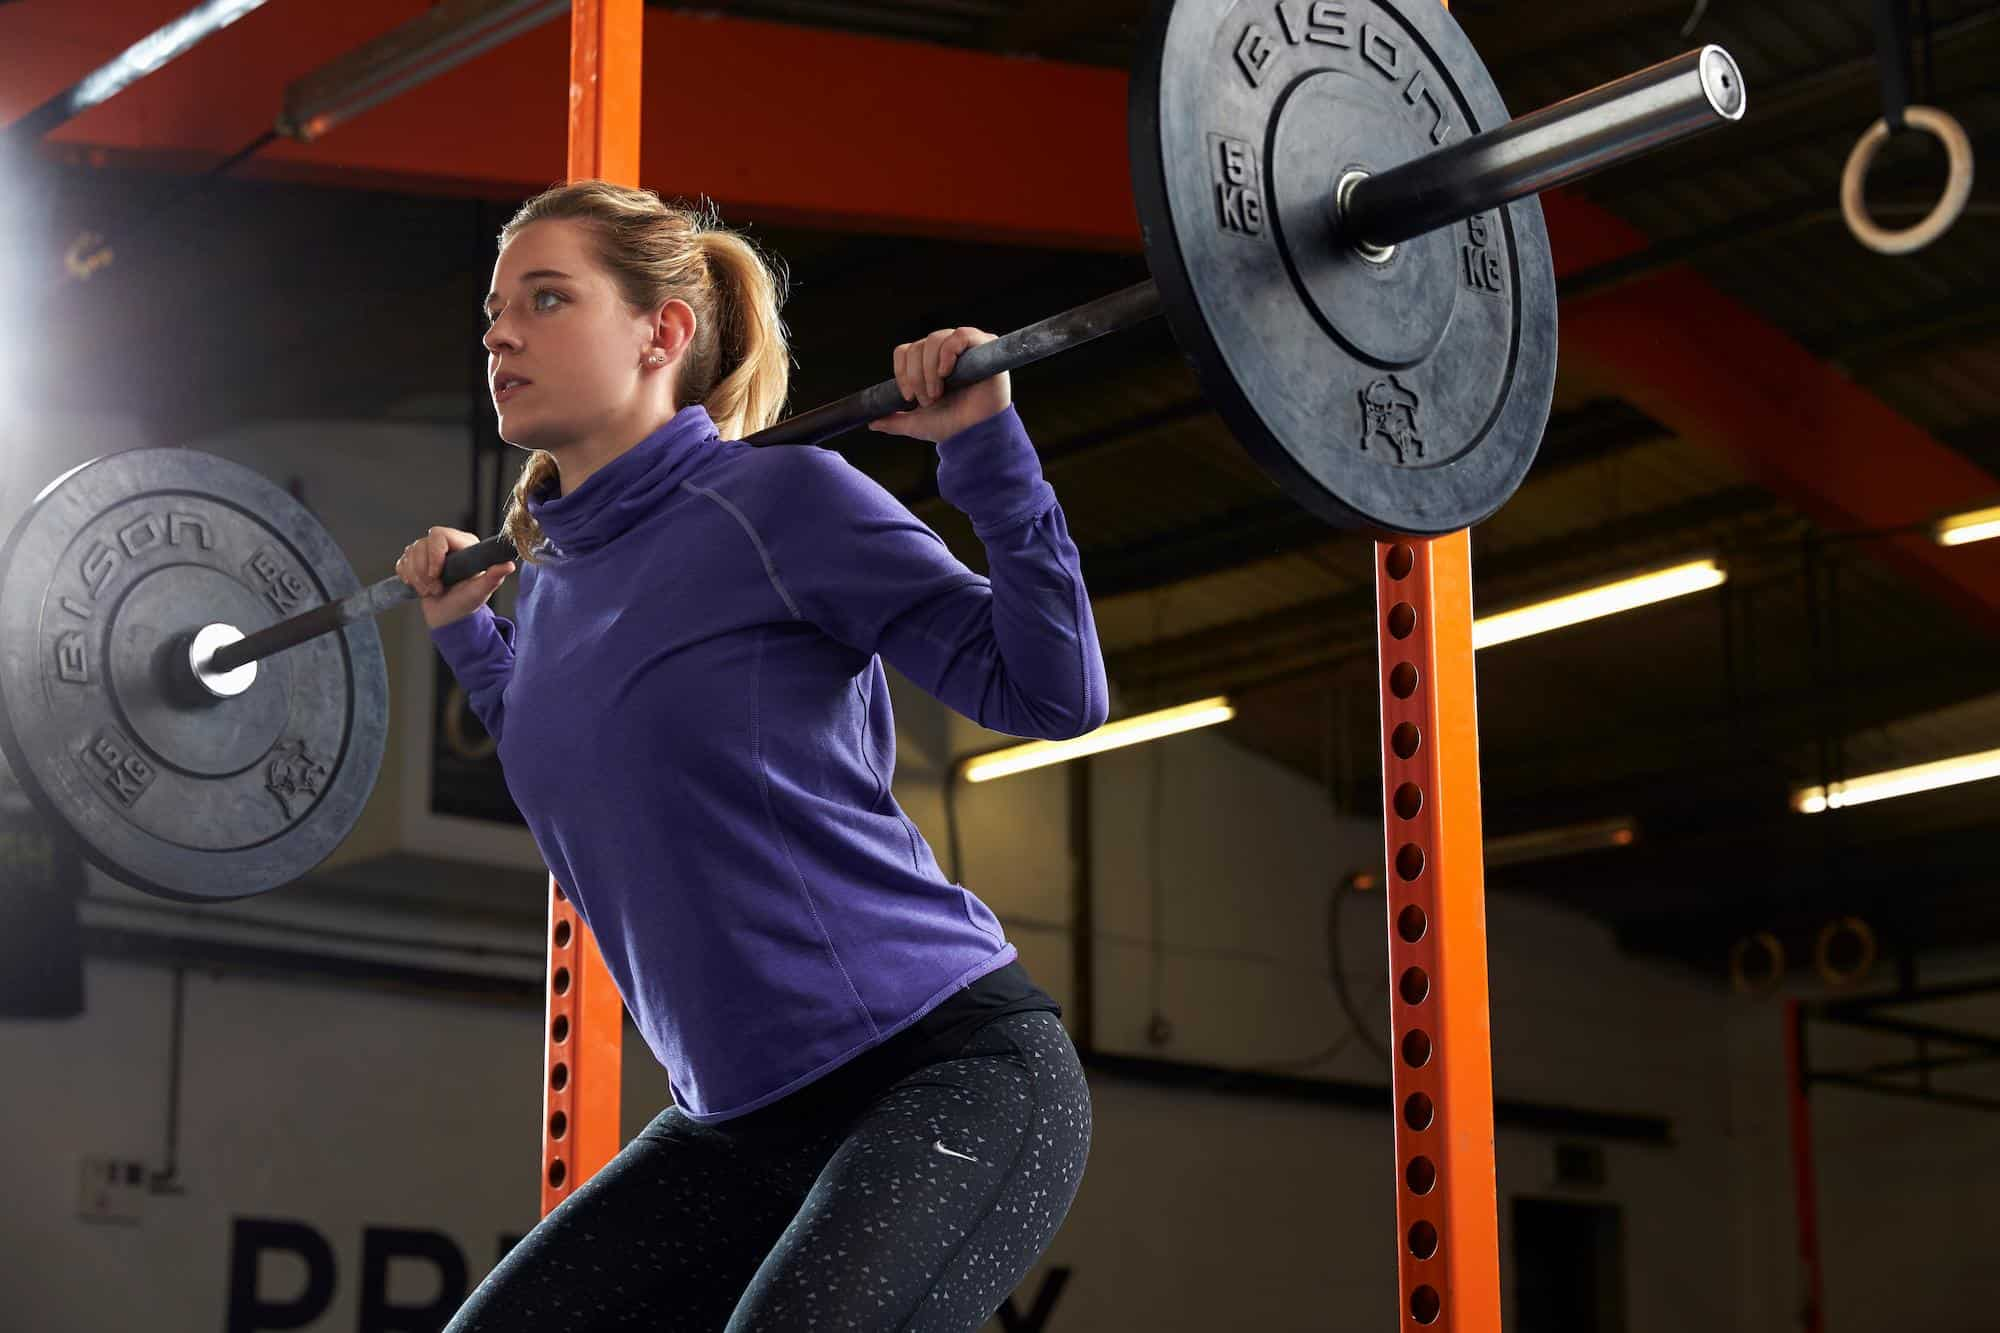 Woman using a power rack